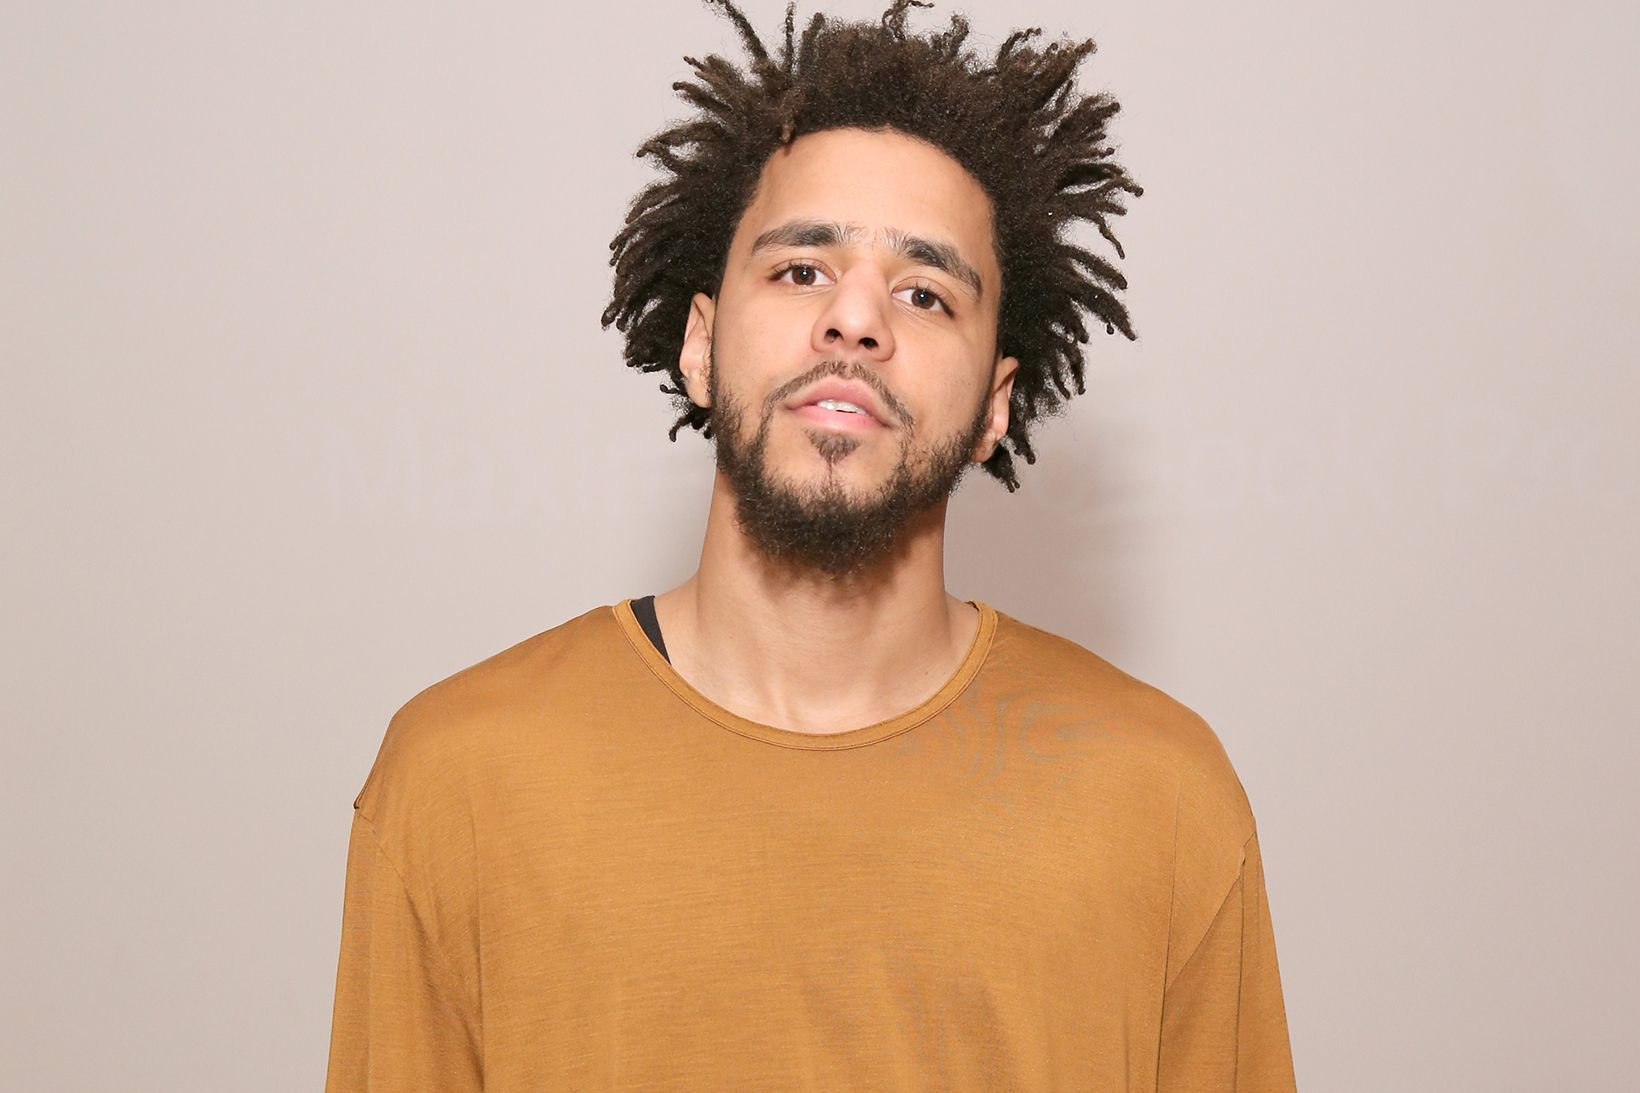 download j cole album of the year m4a